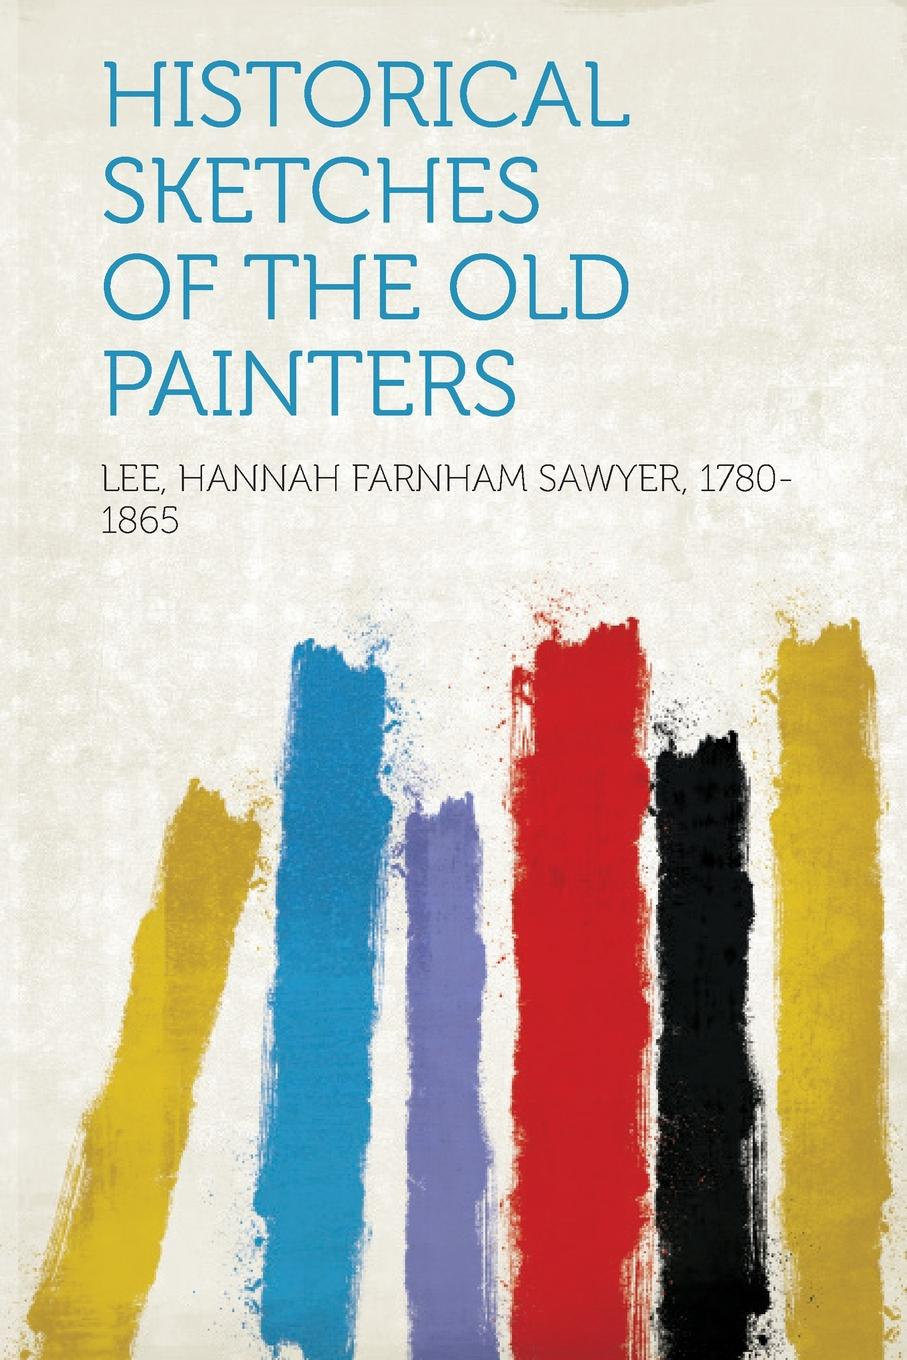 Lee Hannah Farnham Sawyer 1780-1865 Historical Sketches of the Old Painters